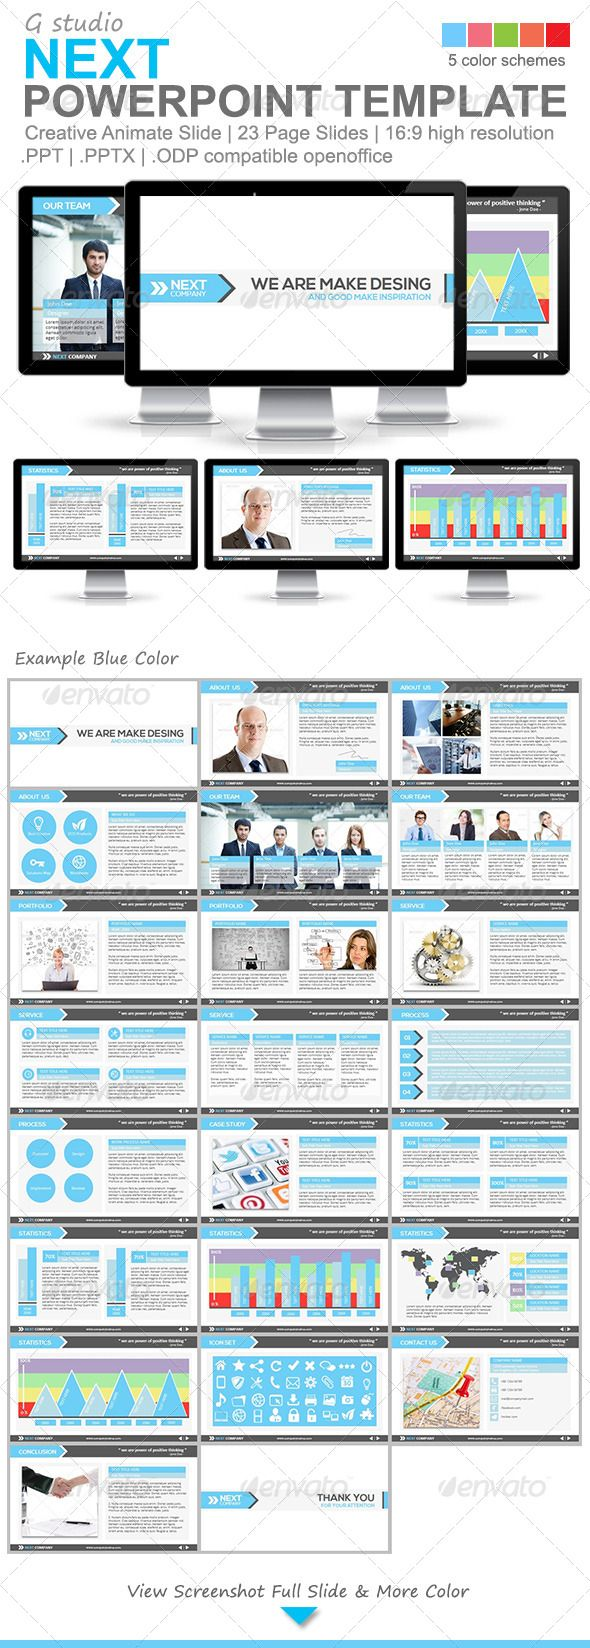 Gstudio next powerpoint template presentation templates template sample blue style powerpoint template is make for powerpoint version 2003 2007 the template use for presentation creativebusinessportfolio or cheaphphosting Image collections